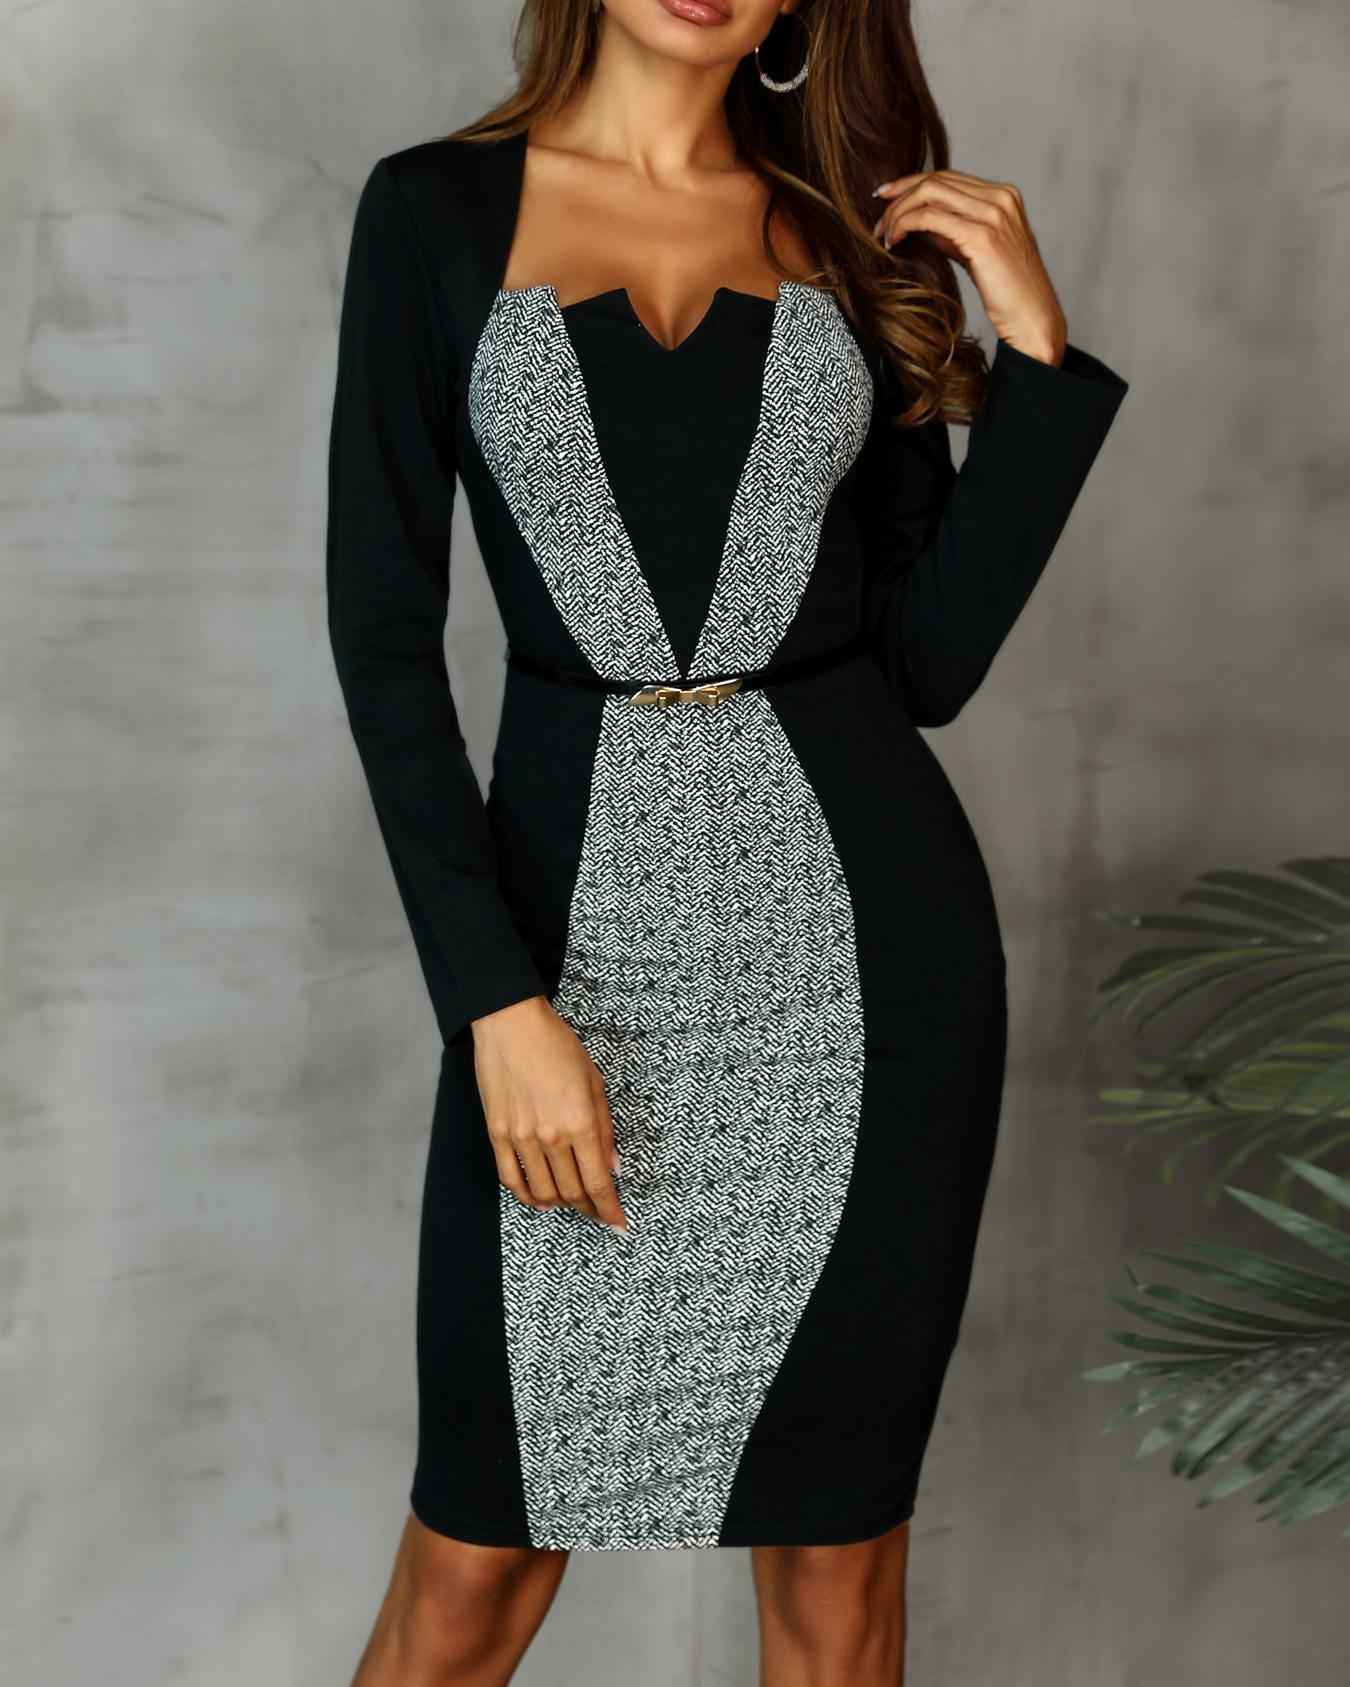 ivrose / Two Tone Cut And Sew Bodycon Dress